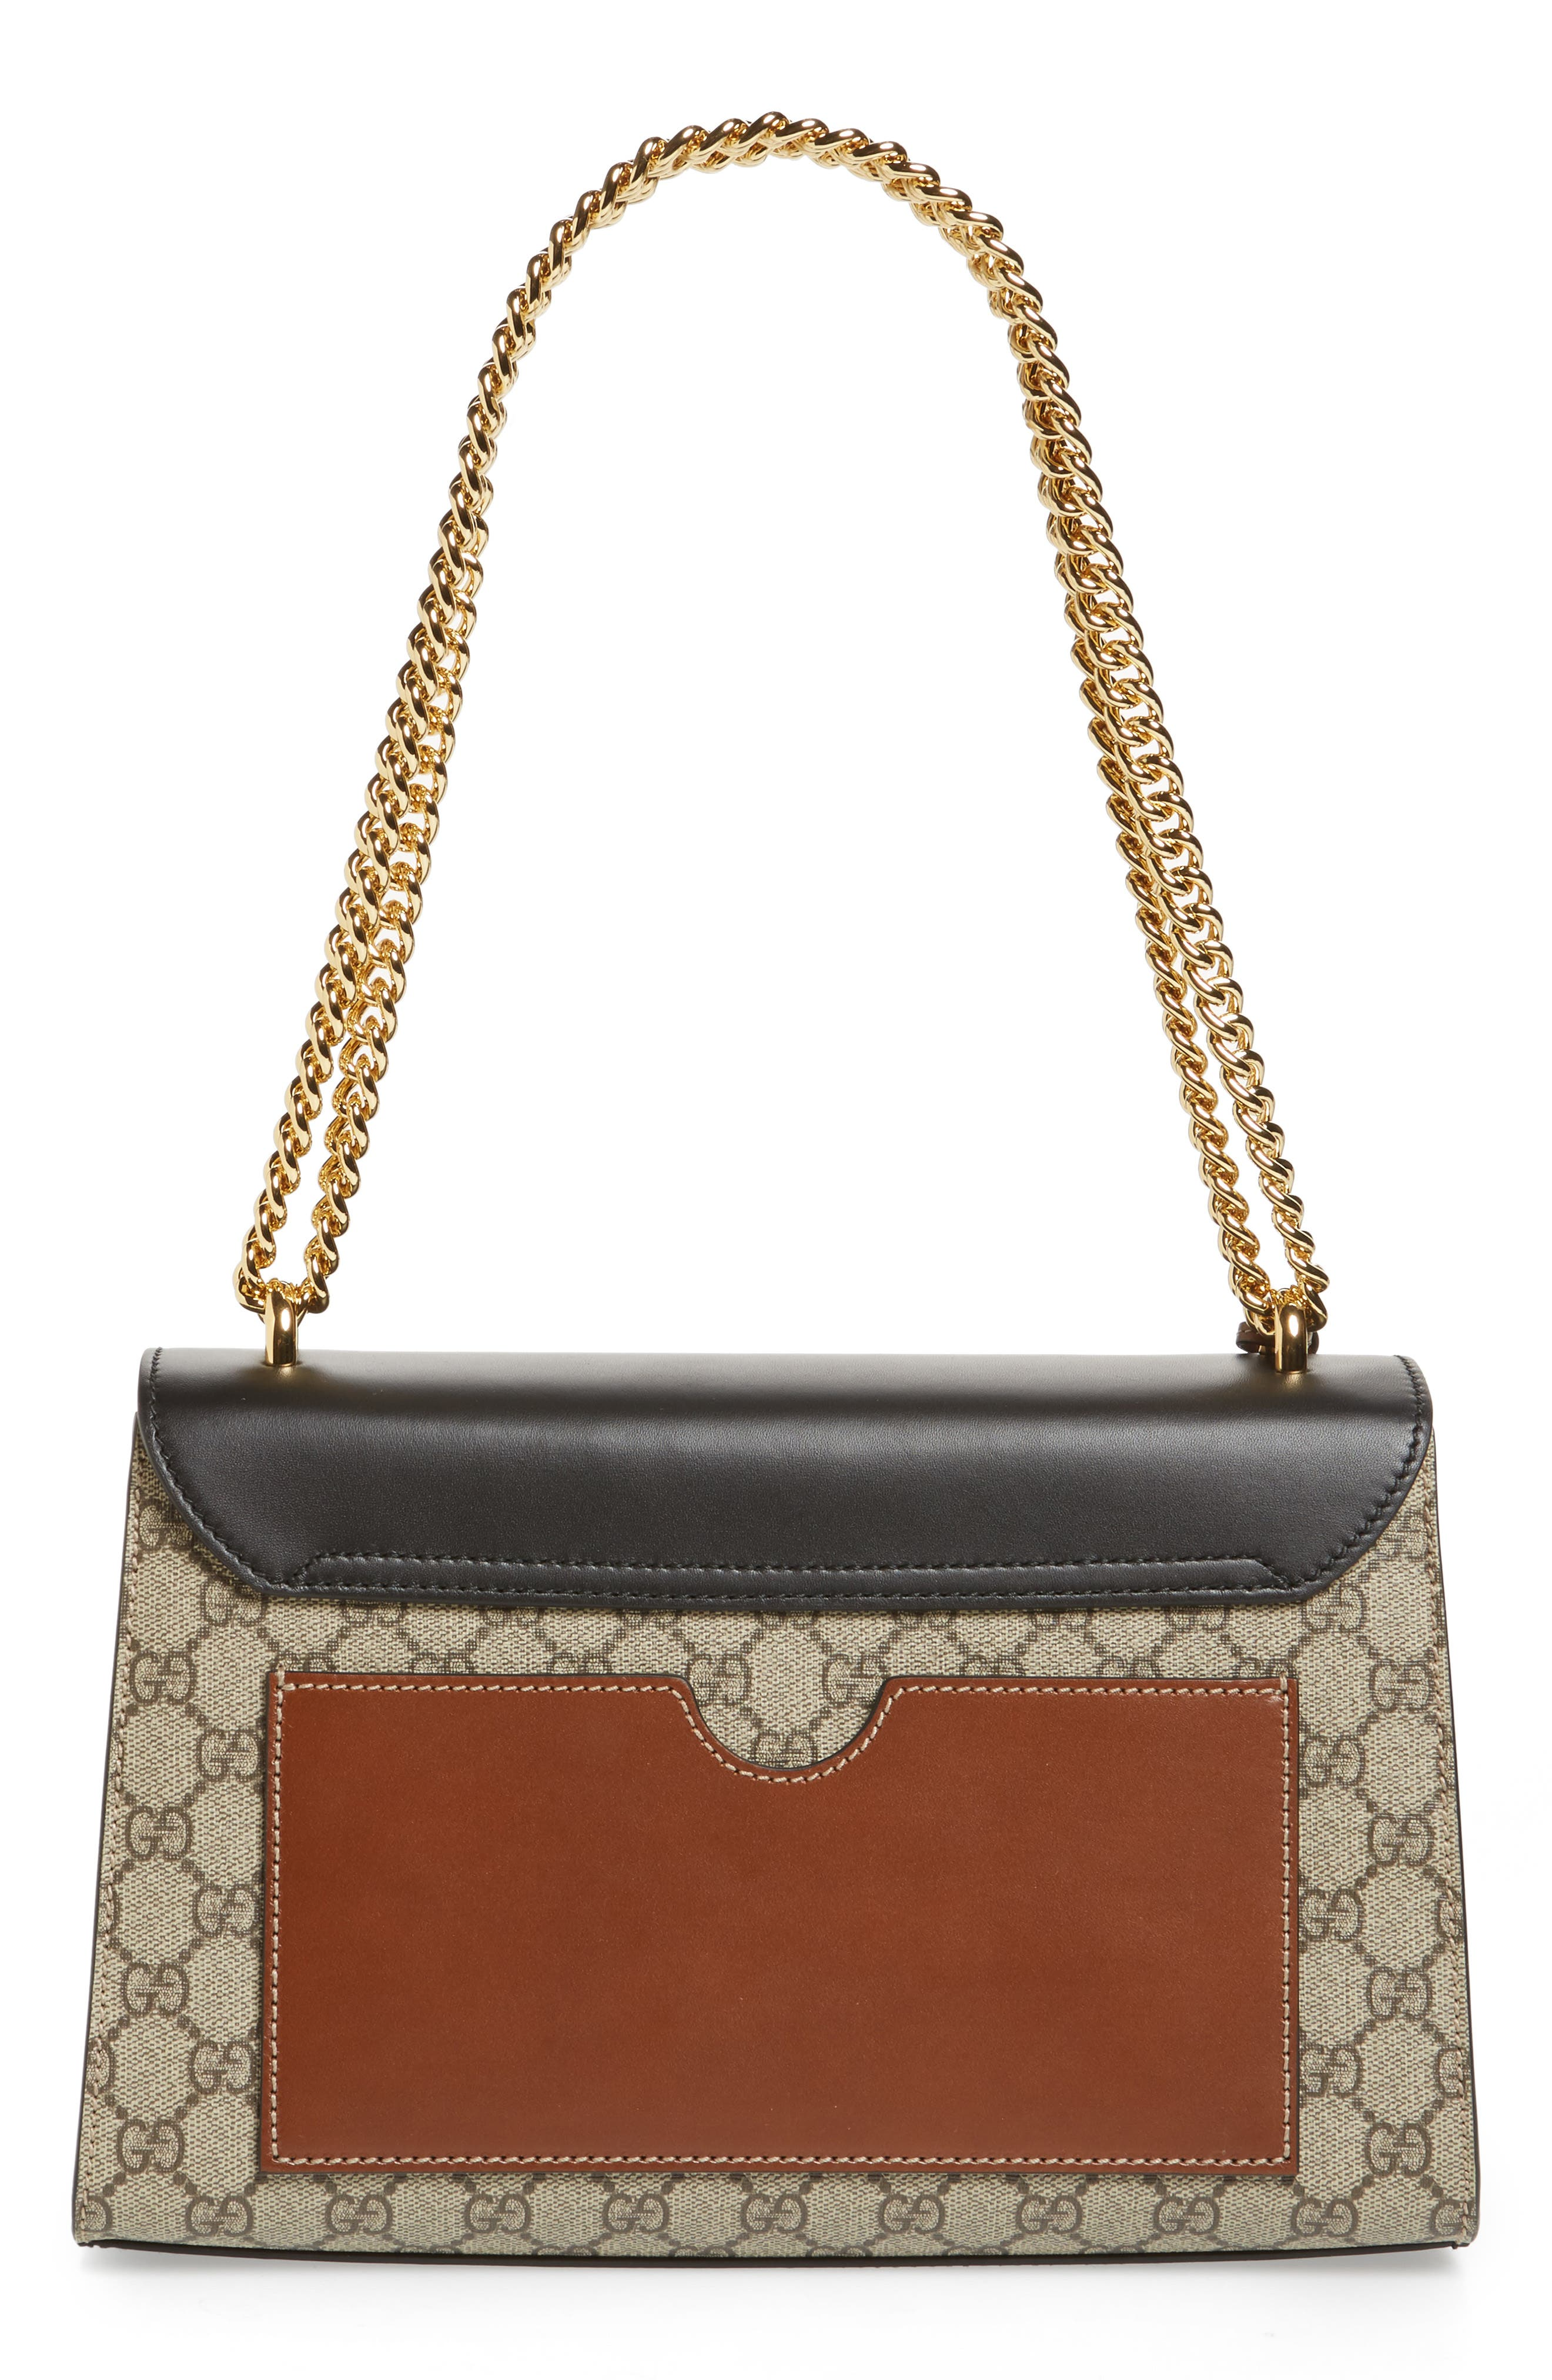 GUCCI, Medium Padlock Leather Shoulder Bag, Alternate thumbnail 3, color, MOON/ TOSCANO